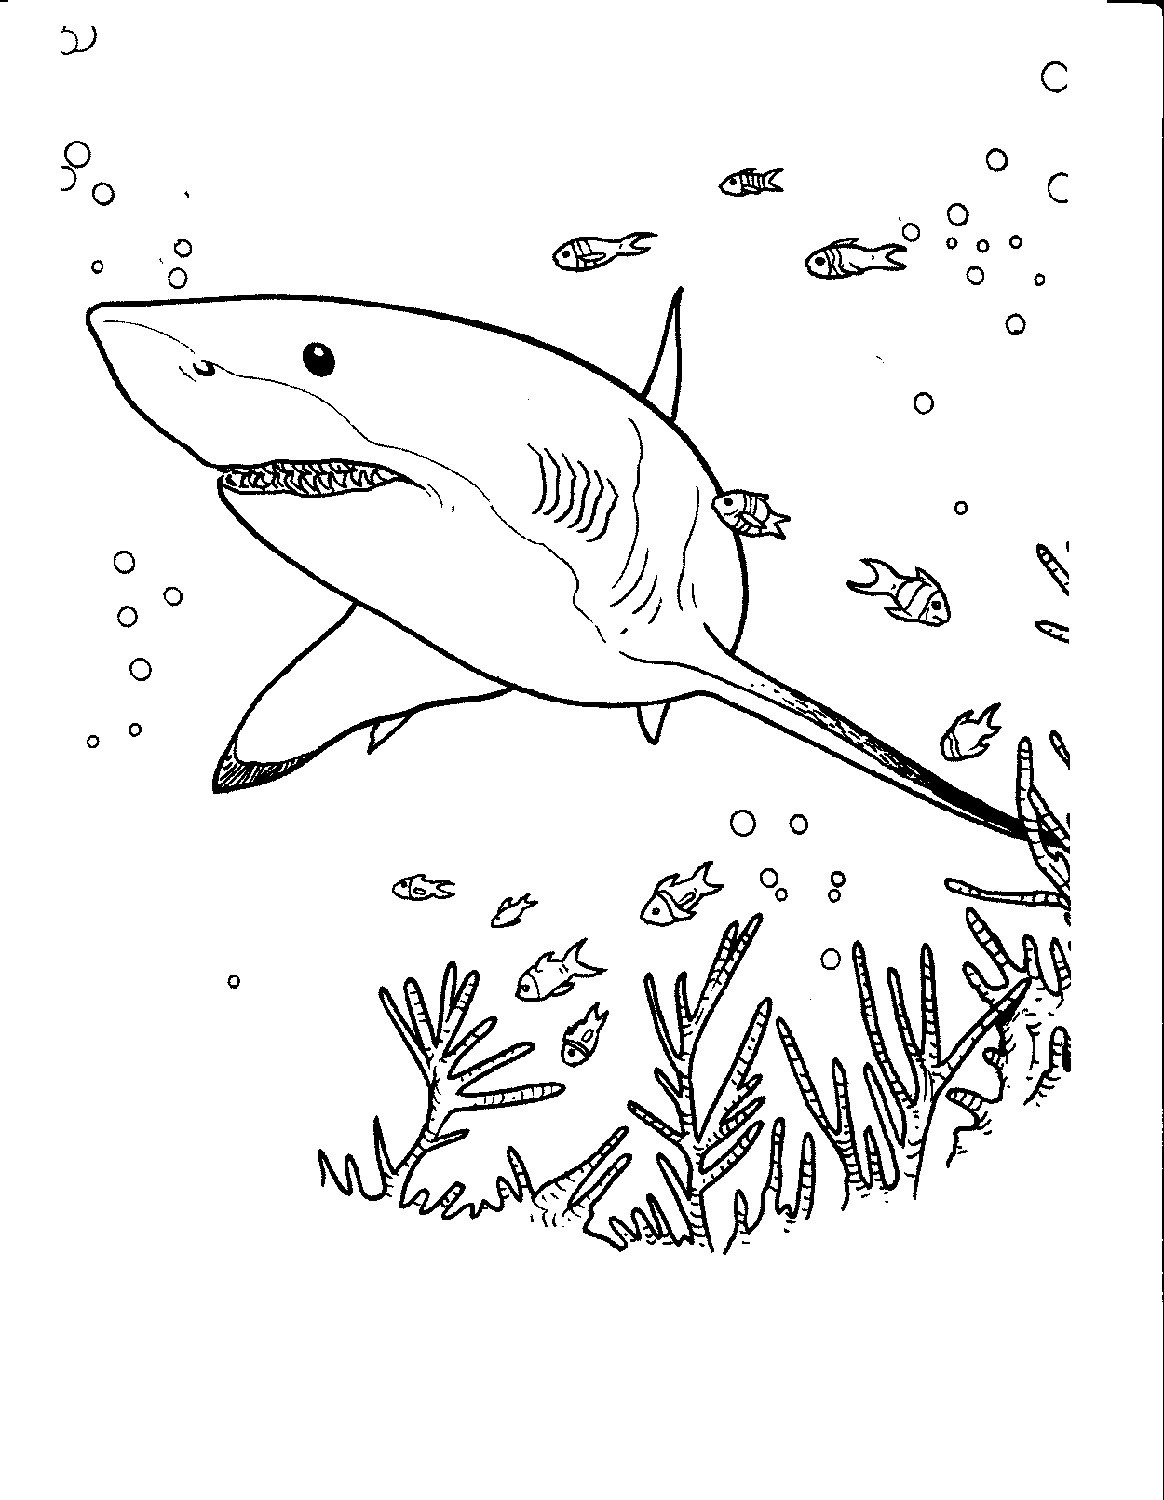 shark coloring pictures mad family fun shark coloring pages shark coloring pictures